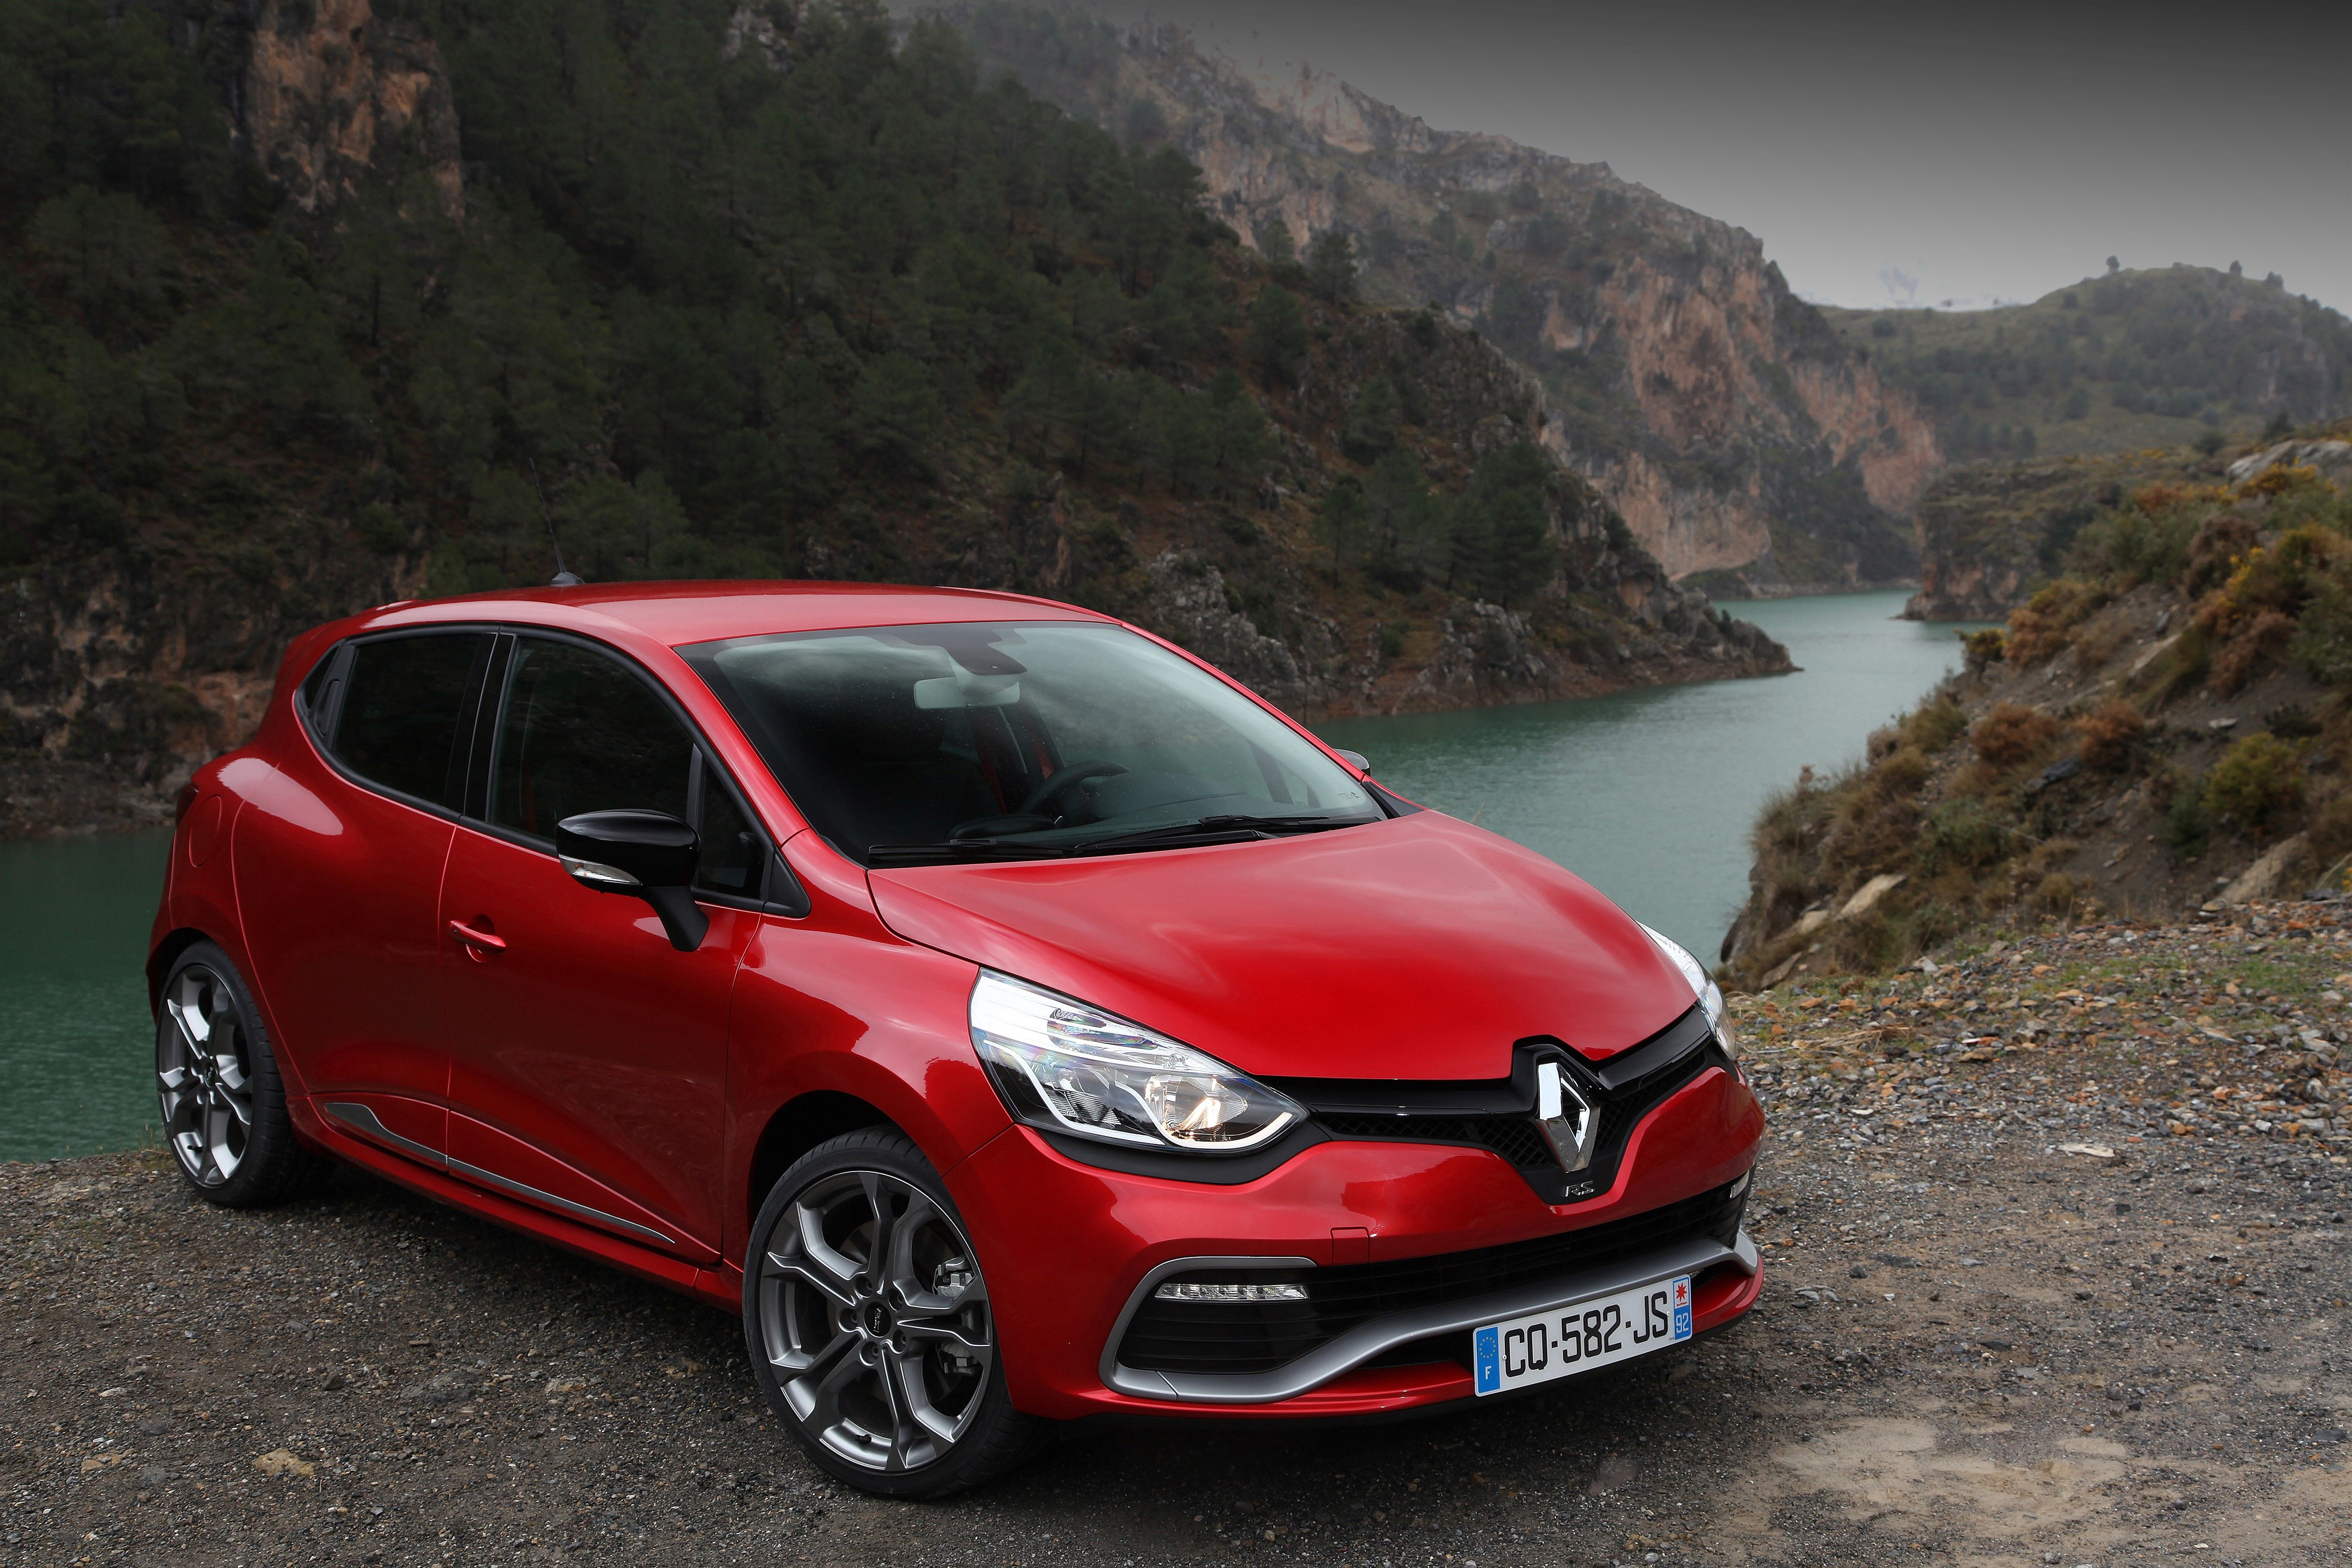 Buyers guide info building my 2014 renaultsport clio 200 edc lux